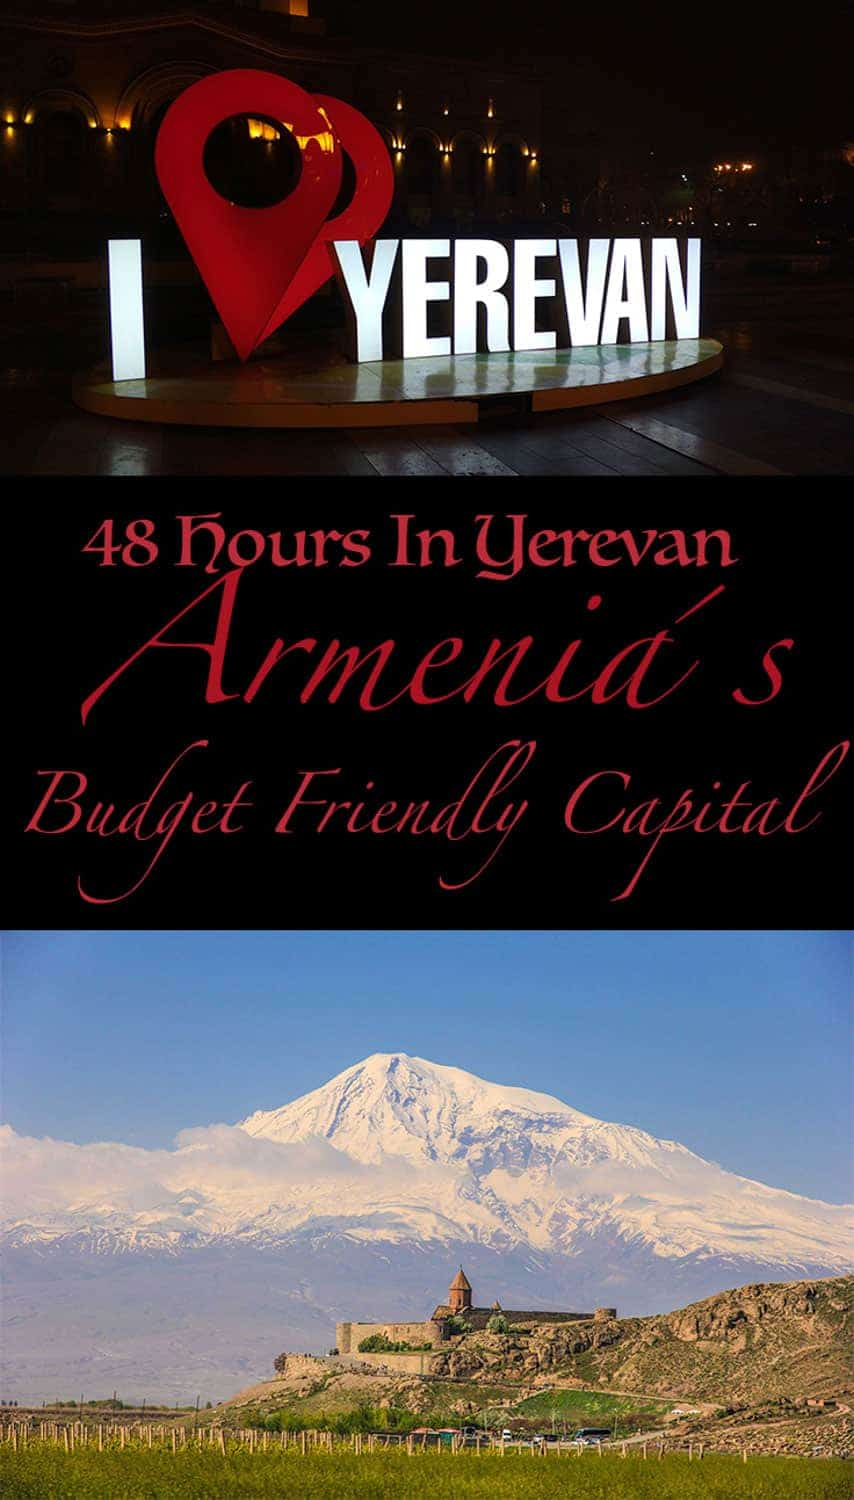 Yerevan the capital of Armenia and by far the biggest city in the country, it has come along way since my first visit there in 2013. Now when I was back here again in December 2017 for a short visit, it was a great joy to see how much the city has improved. It´s now a great option for a long weekend trip together with Tbilisi the capital of neighboring Georgia.